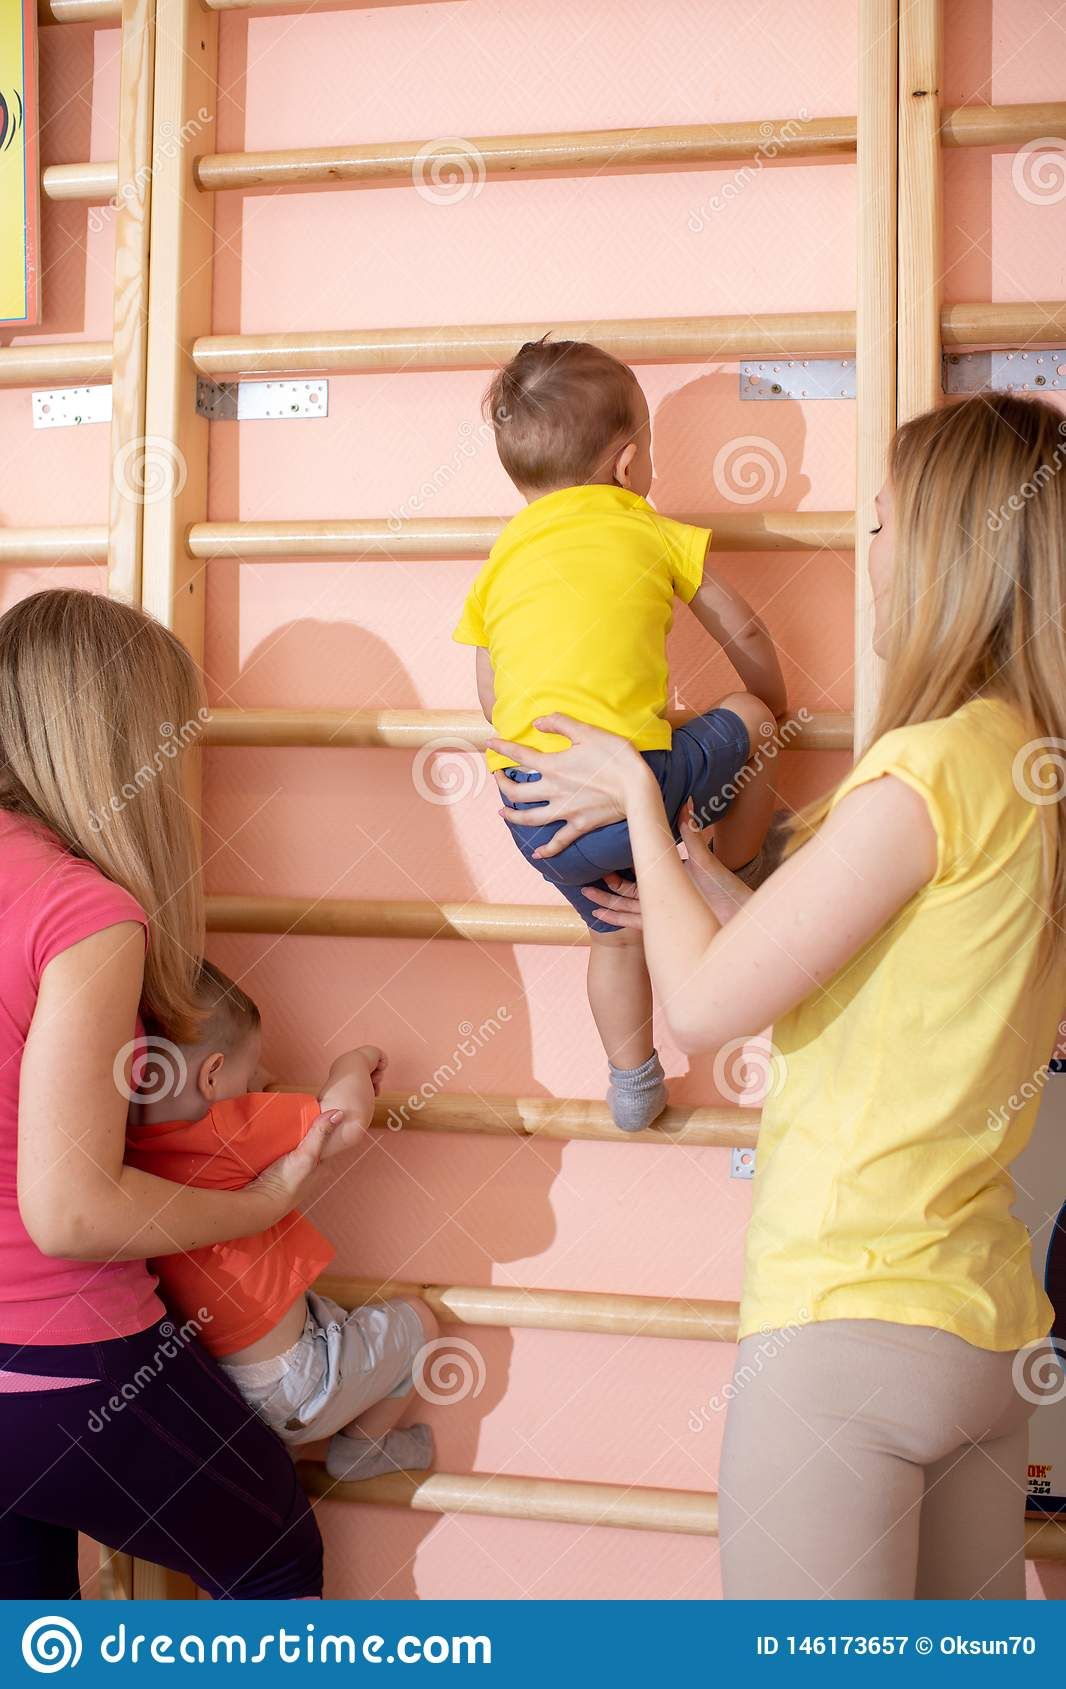 Little children toddlers climbing up the gymnastic stairs. Healthy lifestyle from childhood